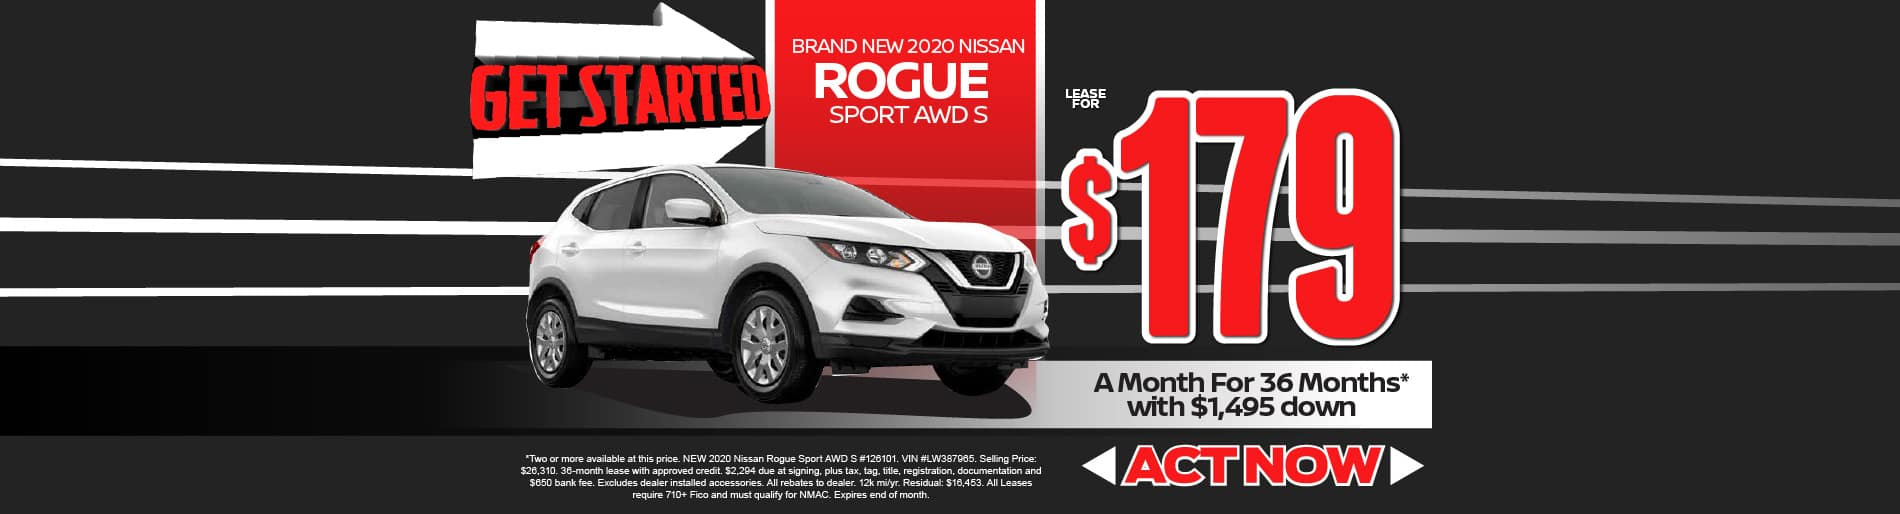 2020 Rogue Sport $179/mo - view inventory